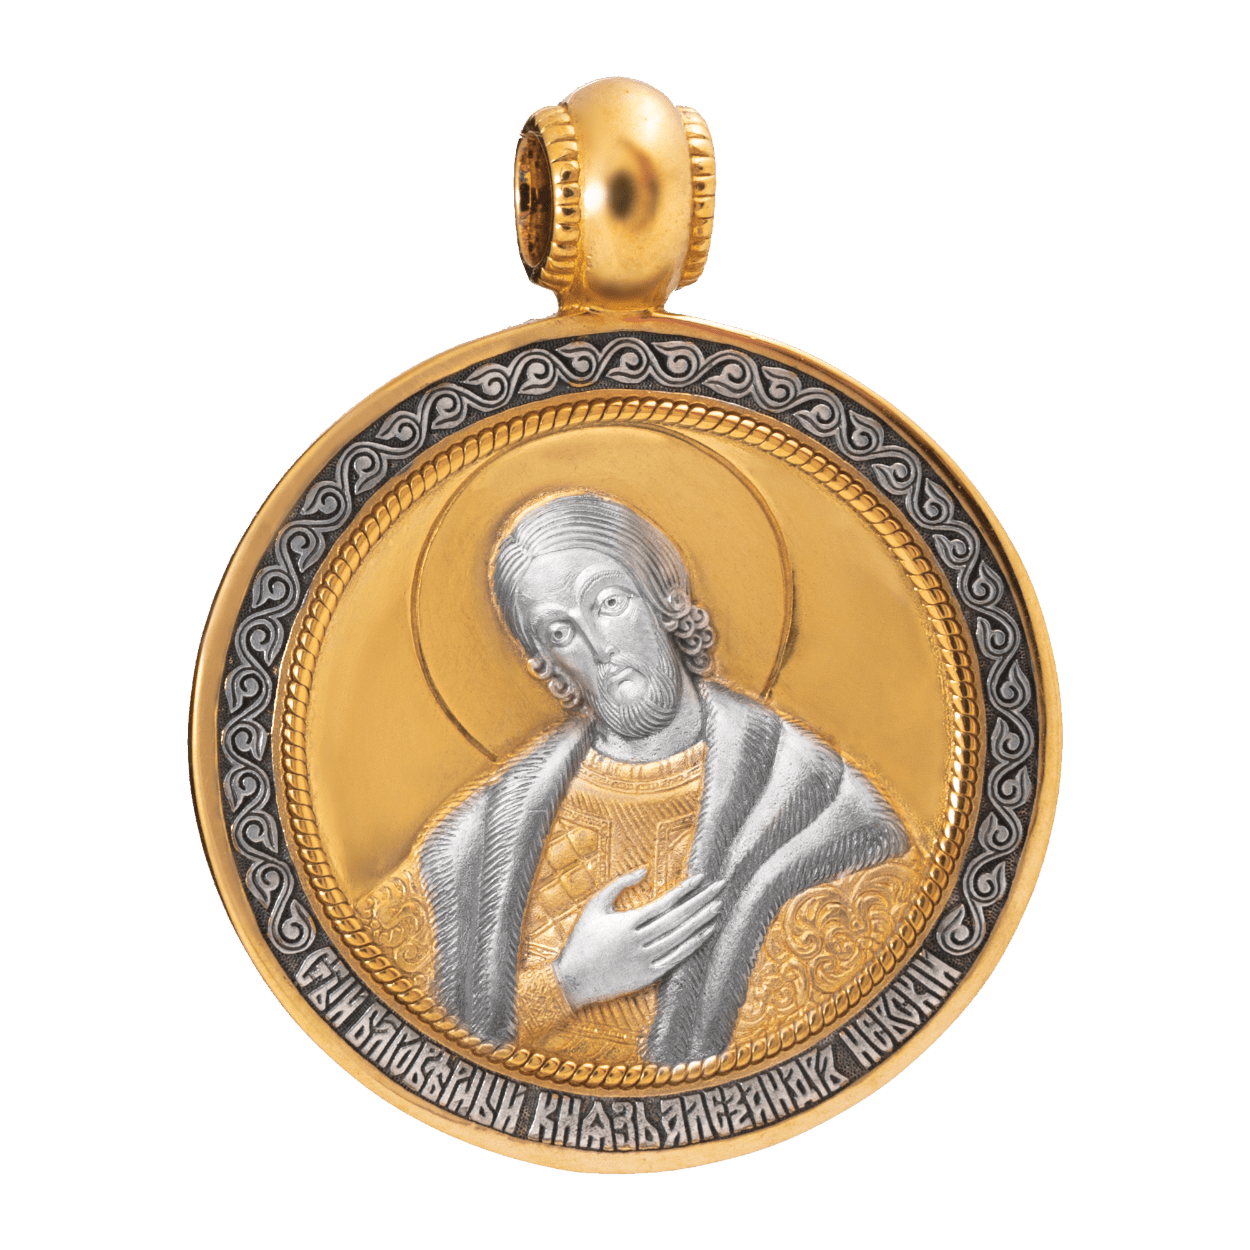 is017_a-russian-orthodox-icon-silver-medal-pendant-saint-alexander-nevsky-master-jeweler-fedorov-min